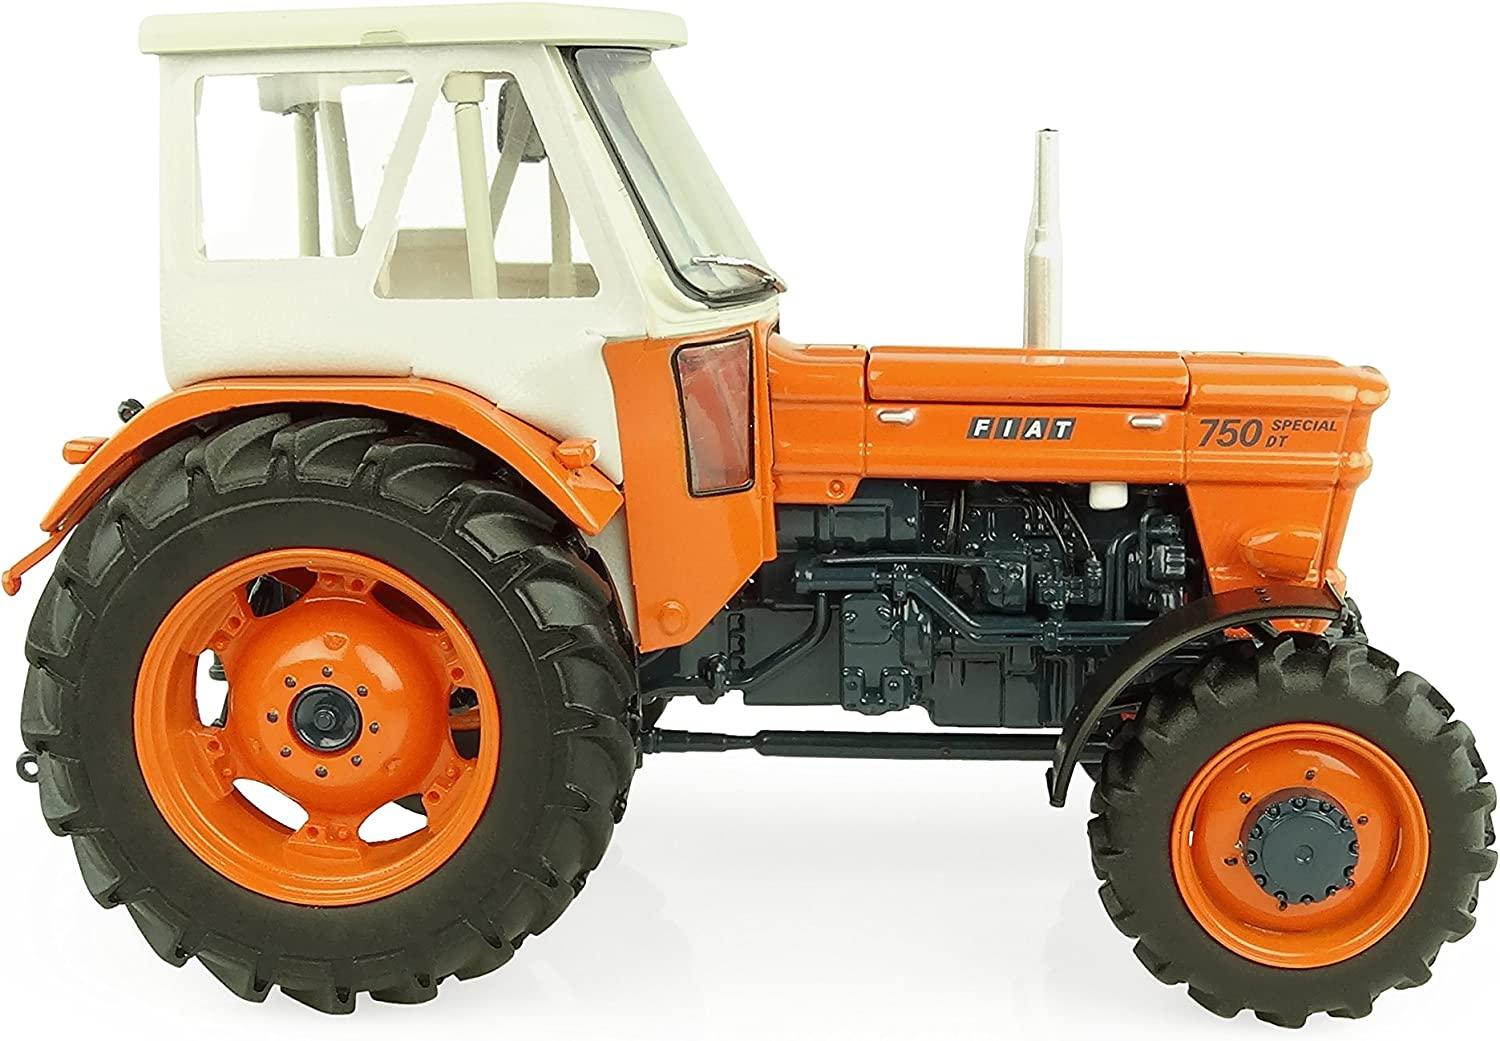 /Vehicle Miniature/ /4WD with Fritzmeier Cabin/ uh5296 Universal Hobbies 750/DT/ /Scale 1//32